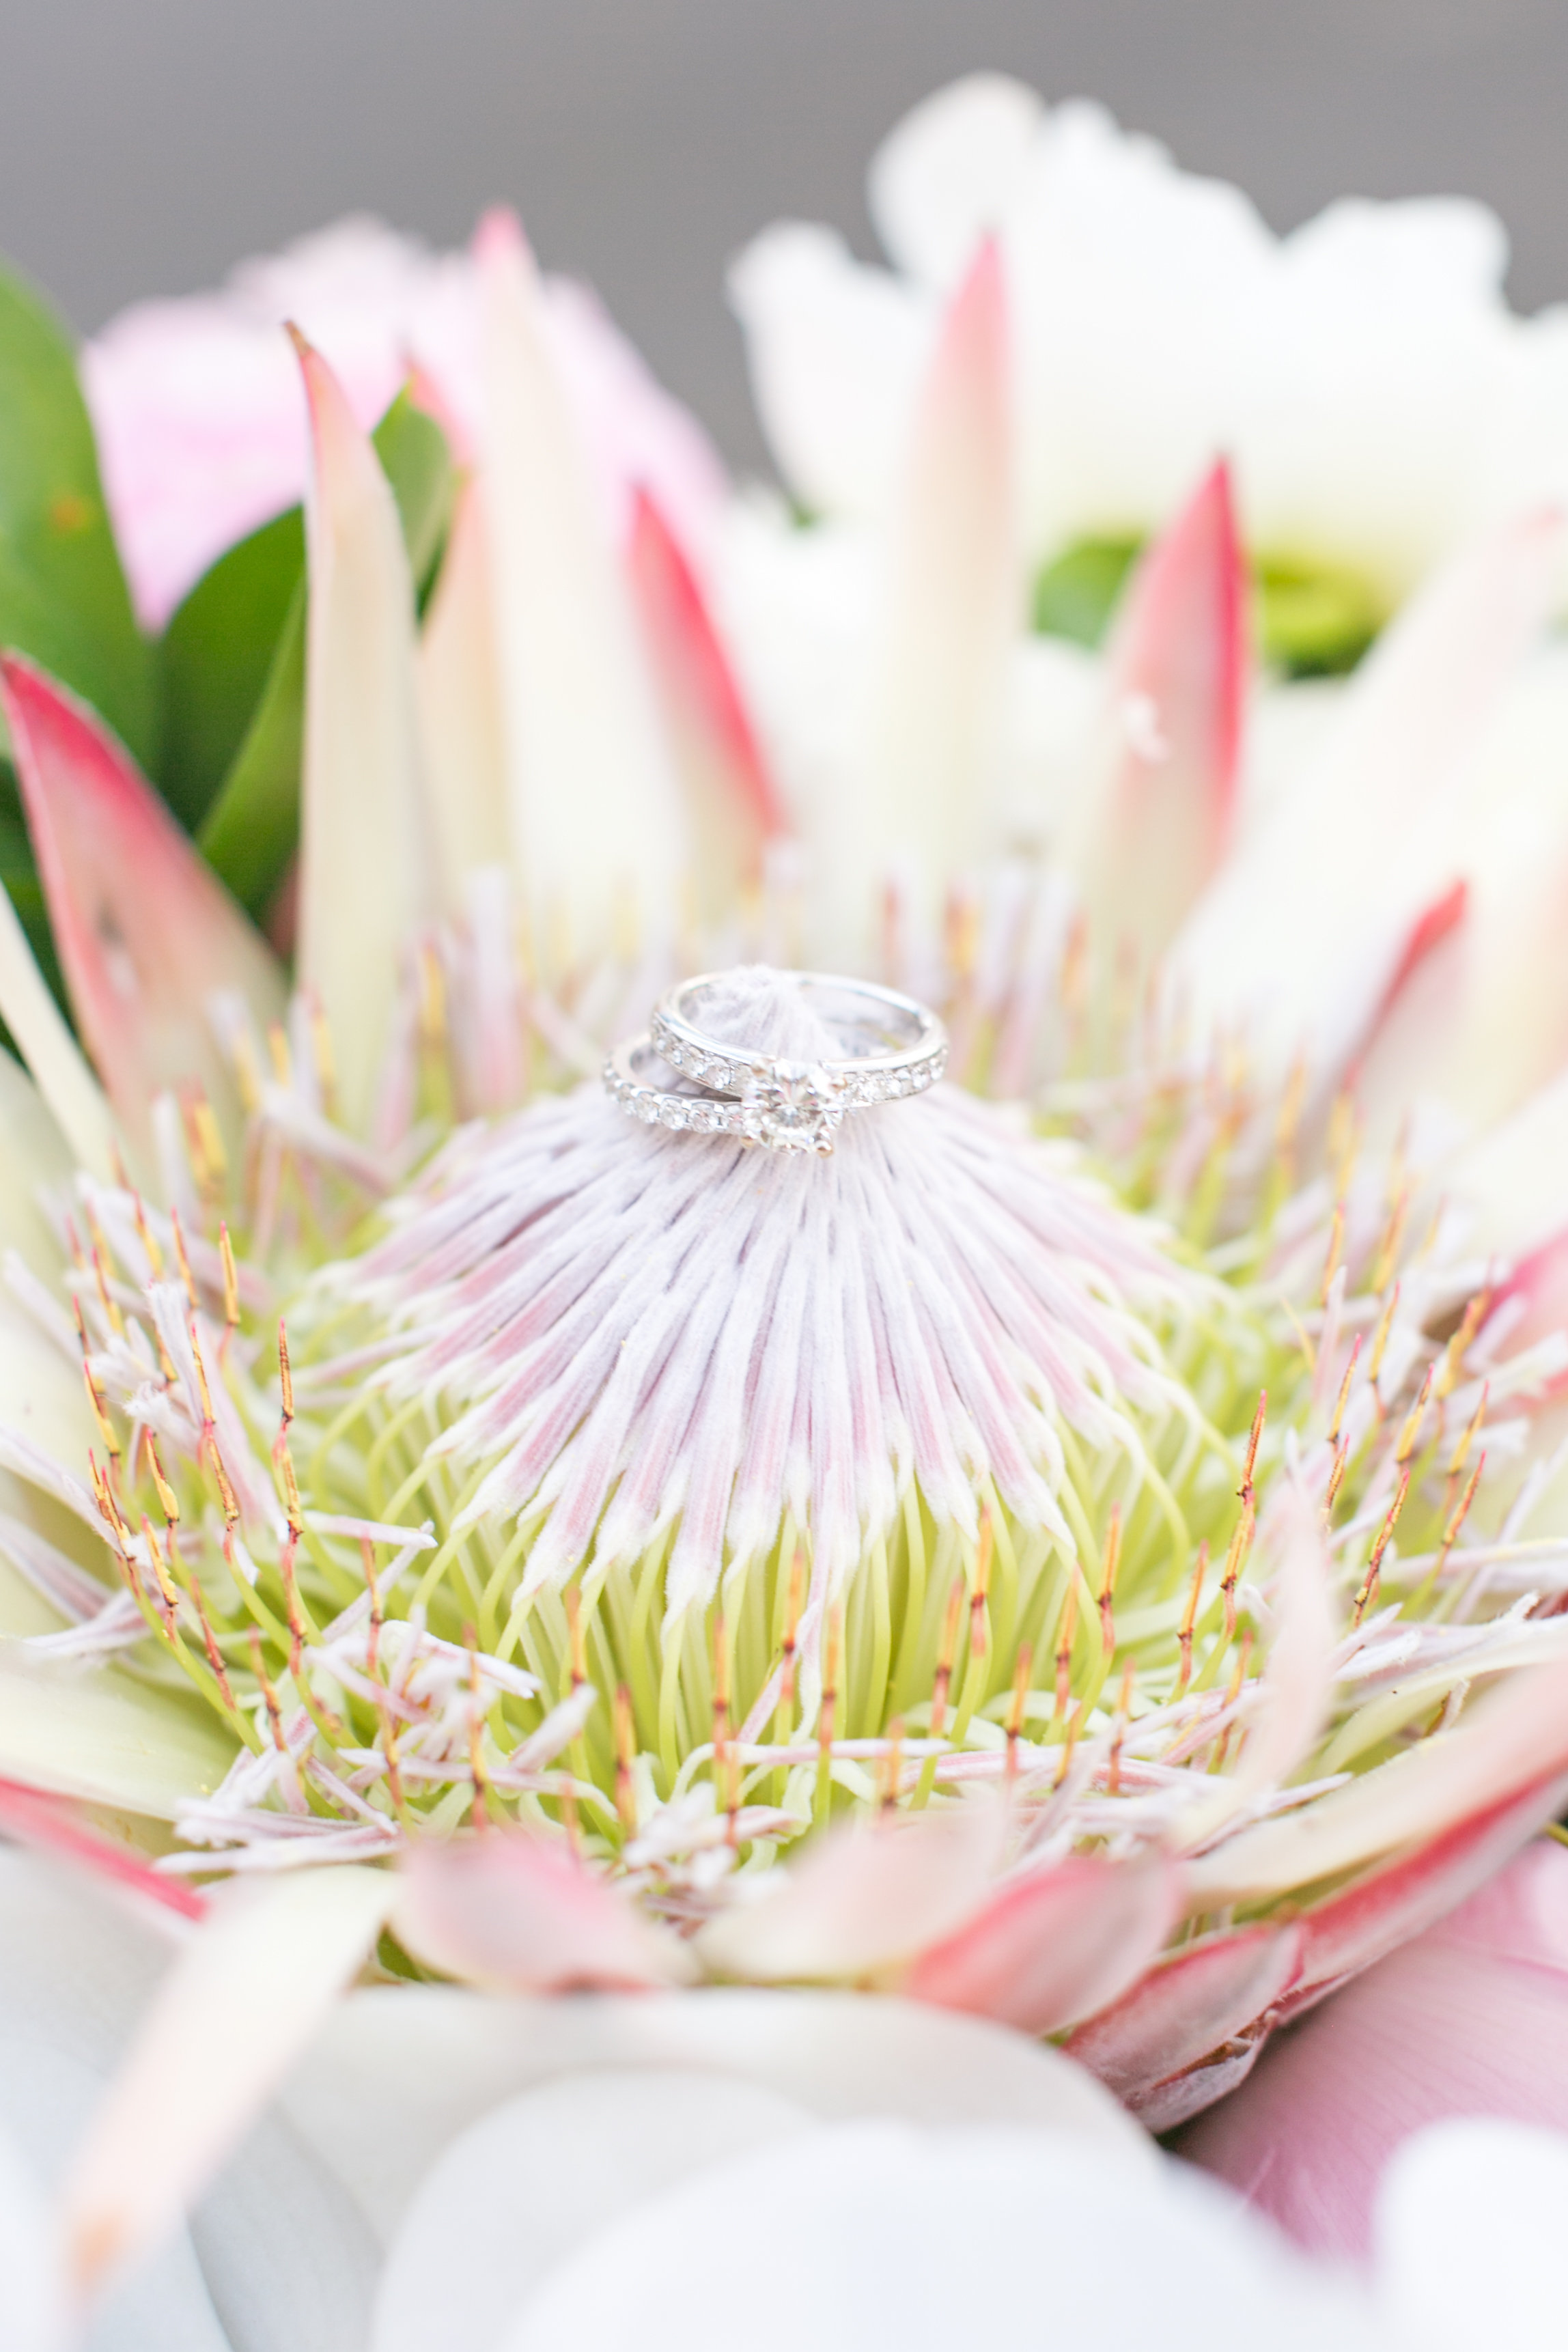 Wedding Bling and a Beautiful King Protea Flower